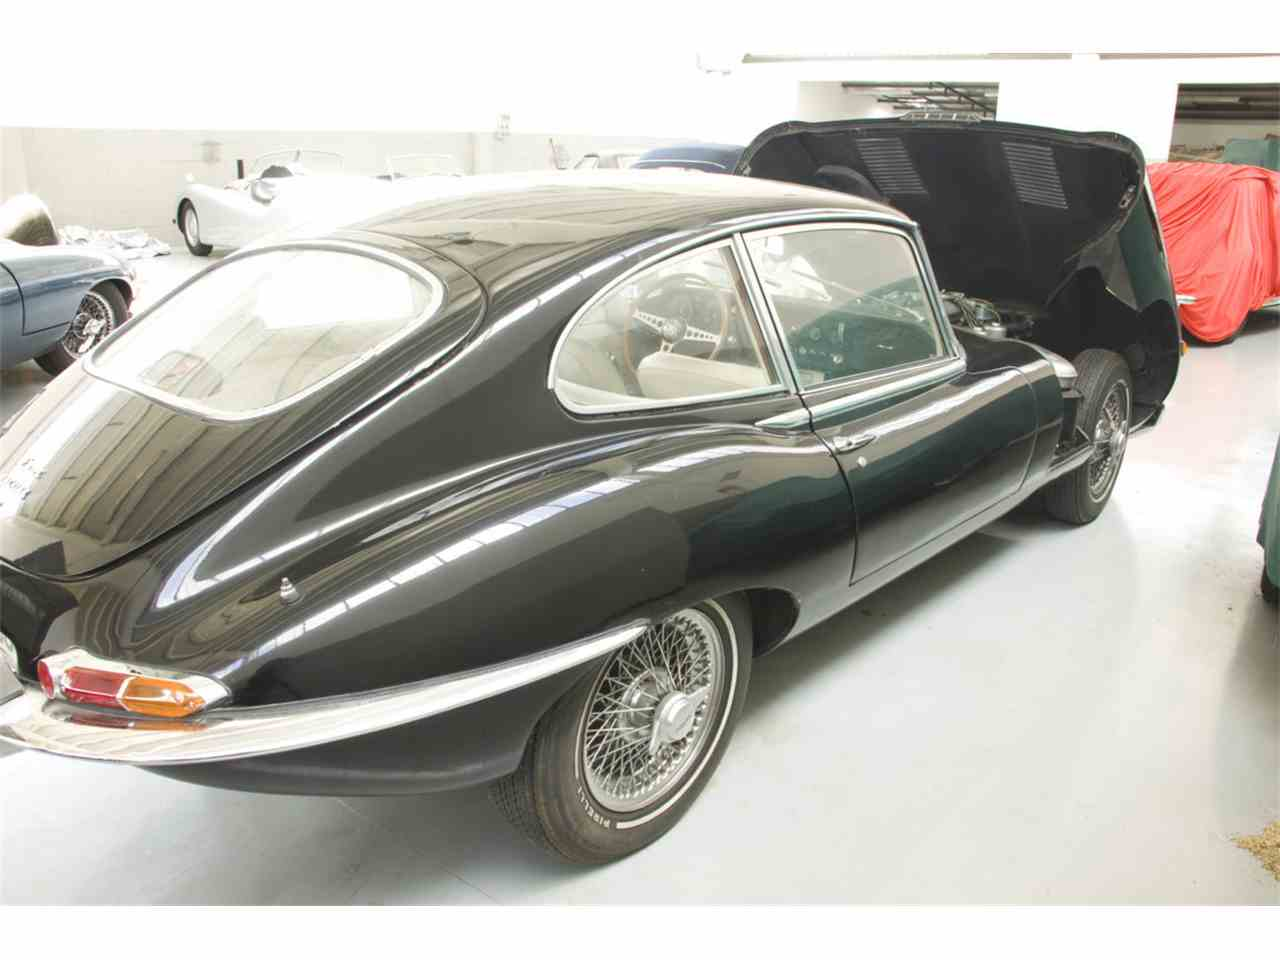 Large Picture of Classic '66 Jaguar E-Type located in MIlano Italy - $89,000.00 Offered by a Private Seller - MWBQ